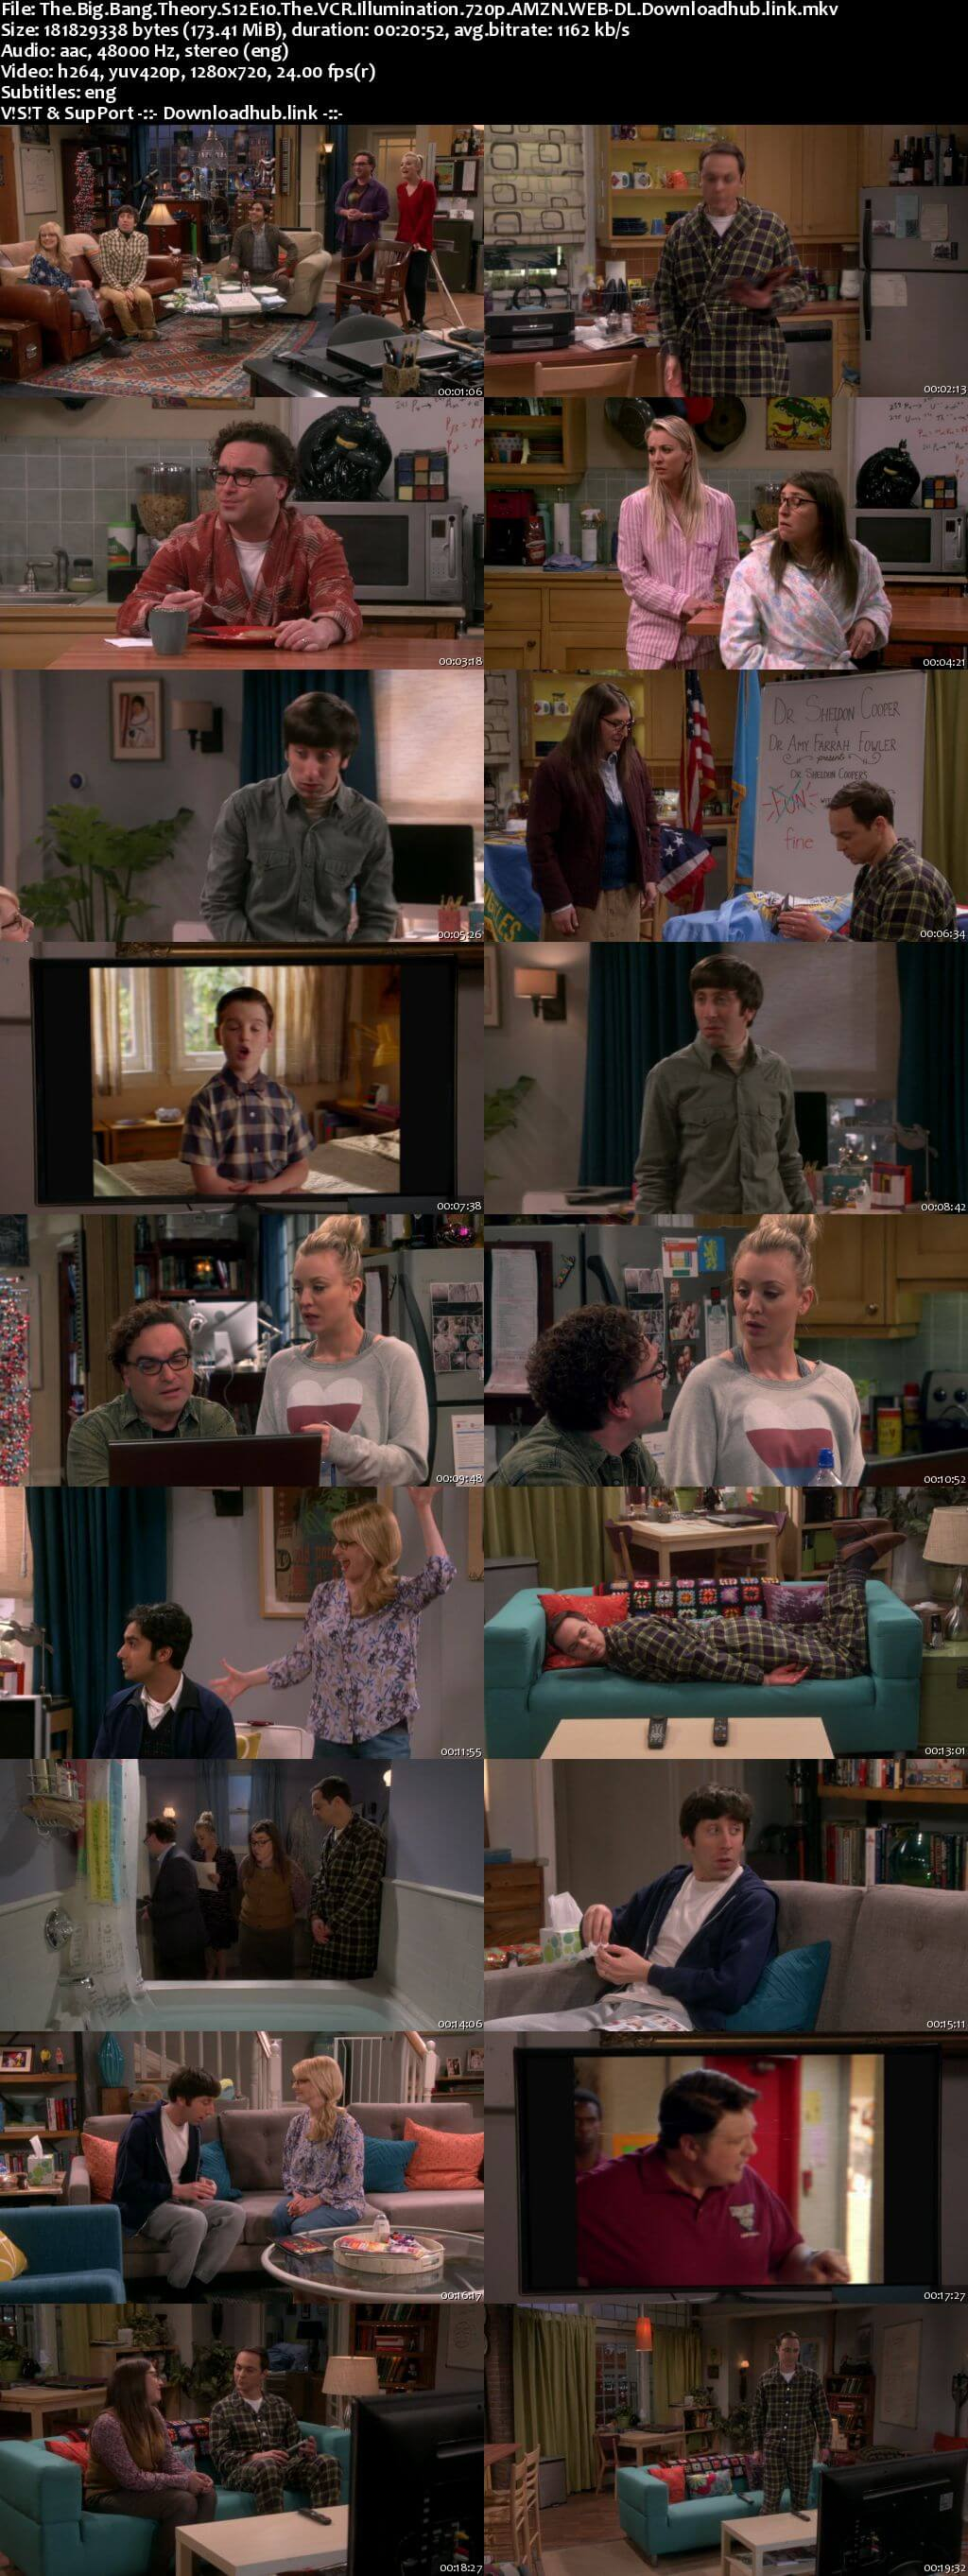 The Big Bang Theory S12E10 170MB AMZN WEB-DL 720p ESubs